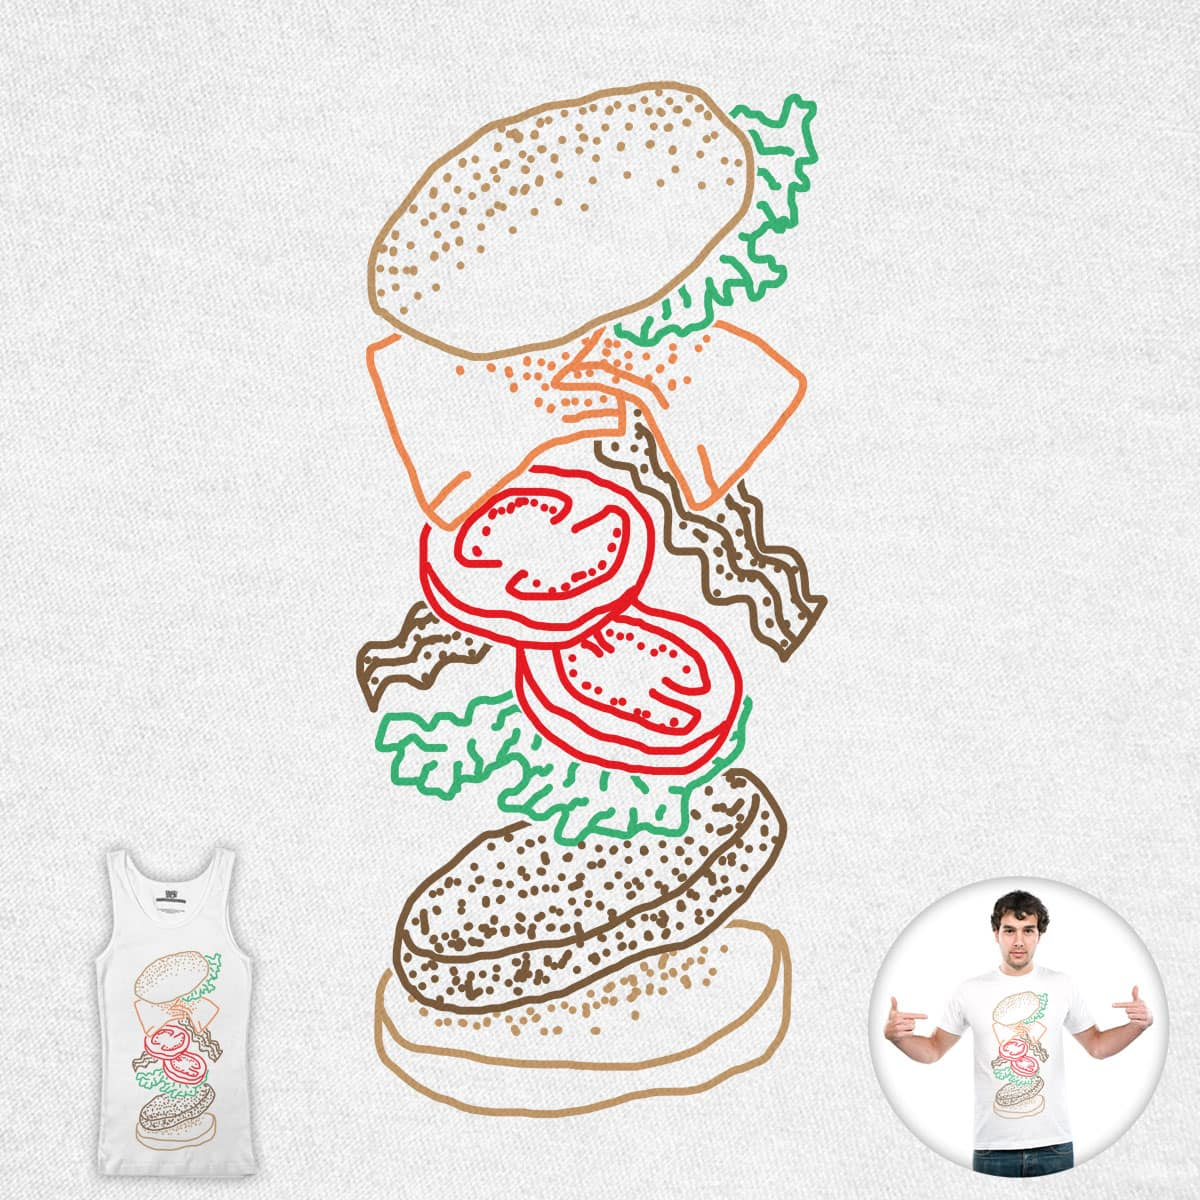 Just Add Sauce (Burger Edition) by SteveOramA on Threadless